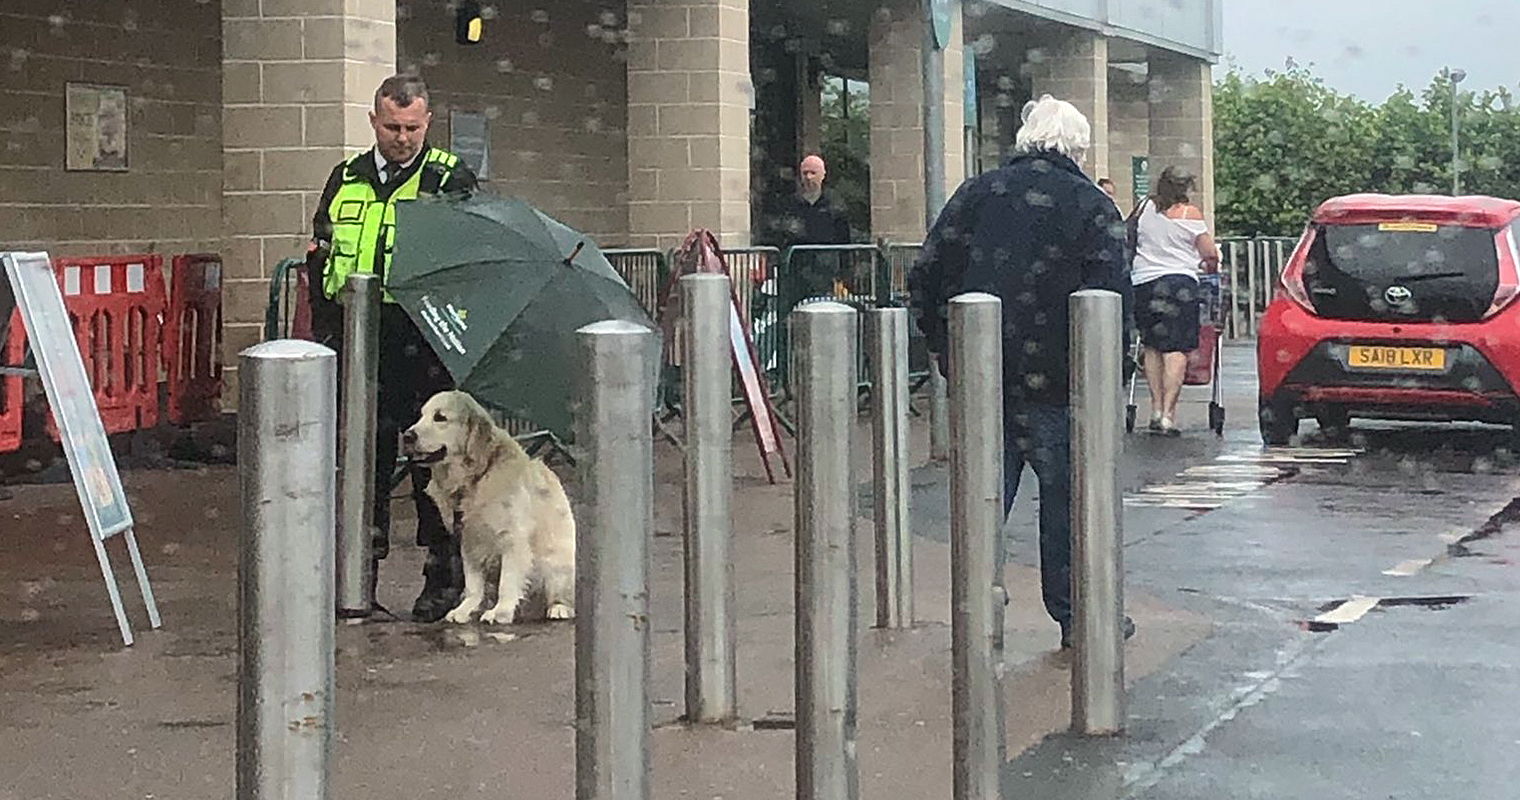 Morrisons security guard who kept dog dry during rainfall is a national hero, The Manc